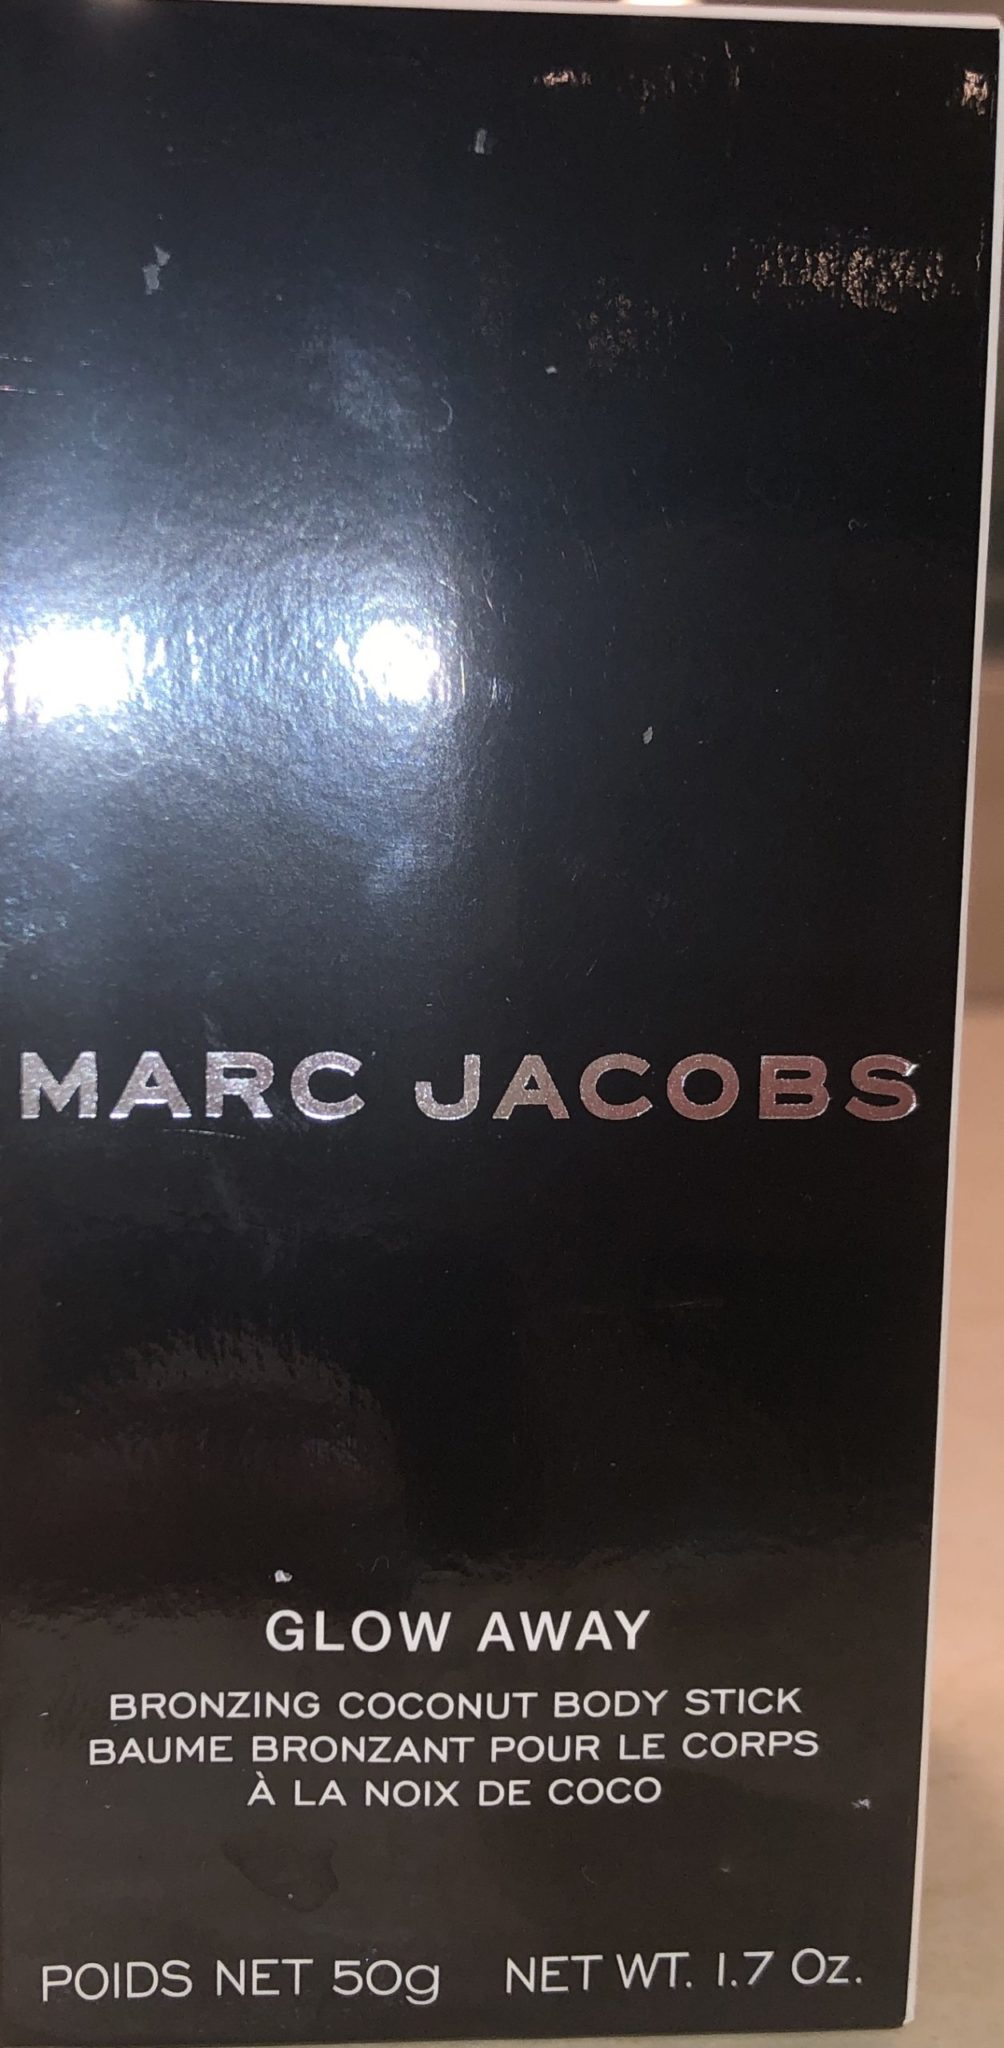 THE OUTER BOX FOR THE MARC JACOBS GLOW AWAY BRONZING COCONUT BODY STICK